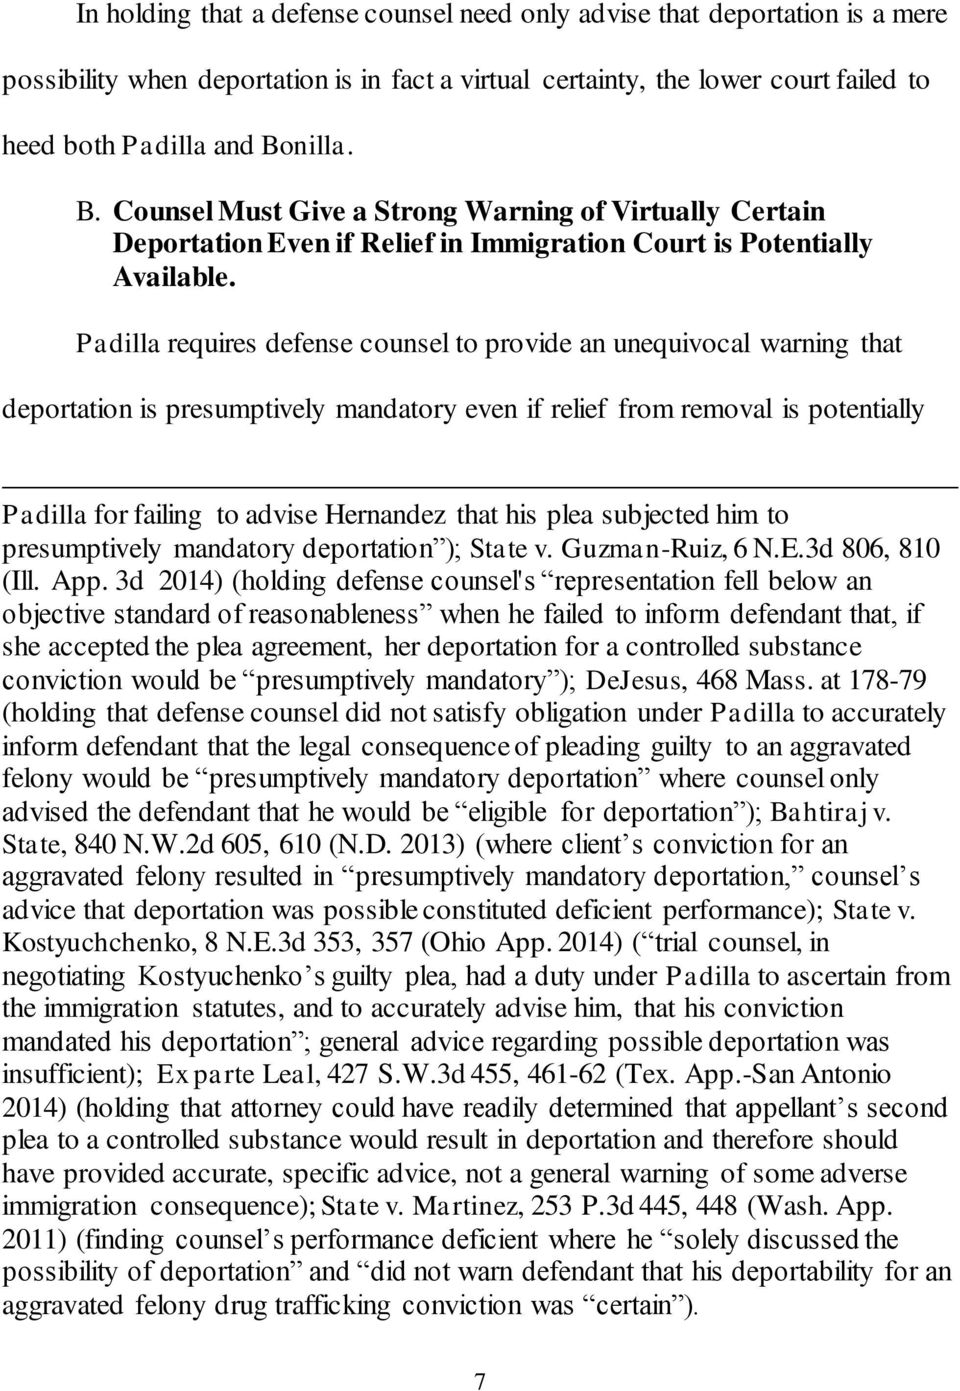 Padilla requires defense counsel to provide an unequivocal warning that deportation is presumptively mandatory even if relief from removal is potentially Padilla for failing to advise Hernandez that